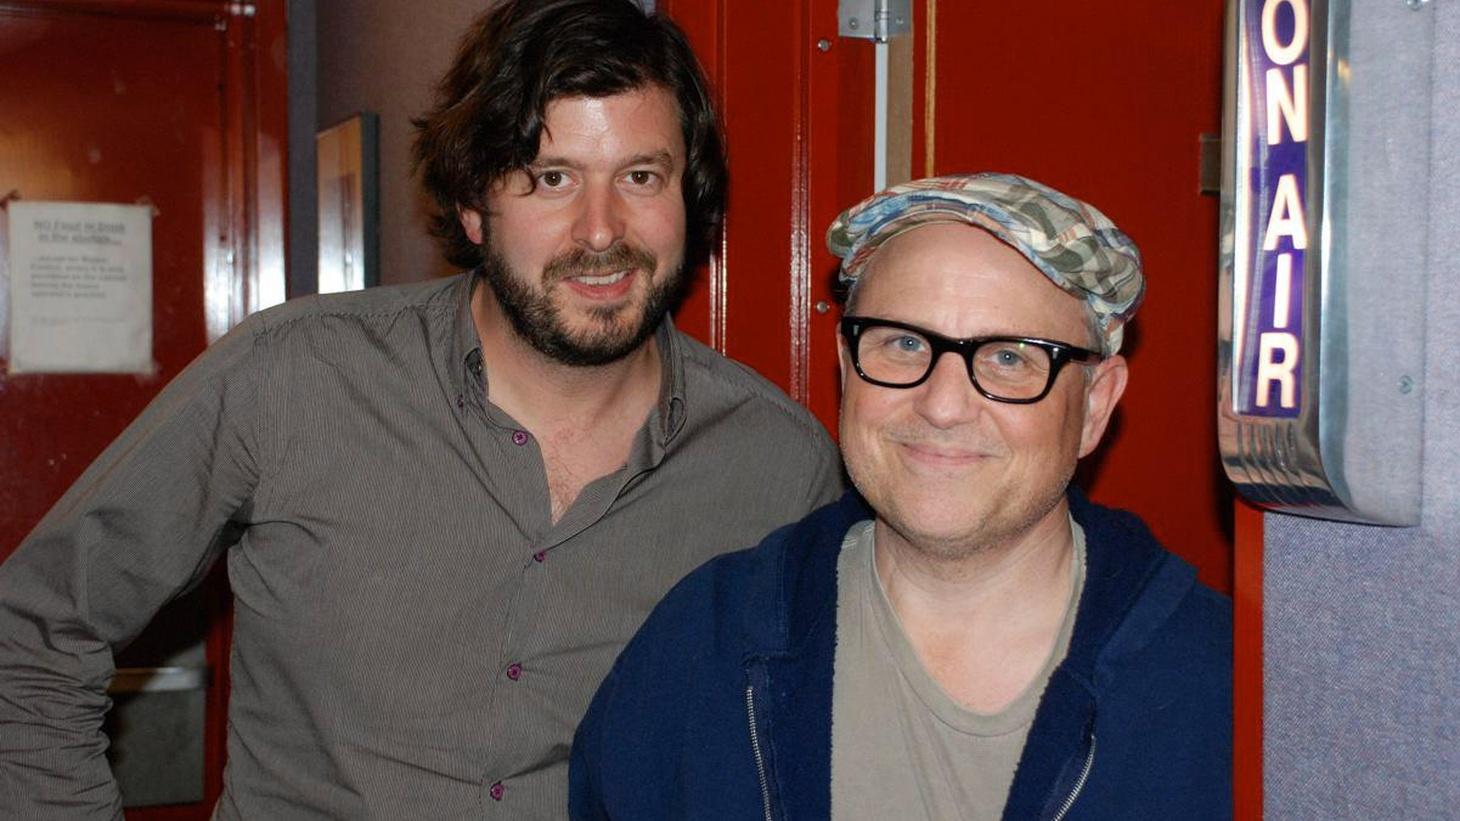 Bobcat Goldthwait wanted to clear up one thing before introducing some of his favorite songs – contrary to what you might have heard, he is not dead...